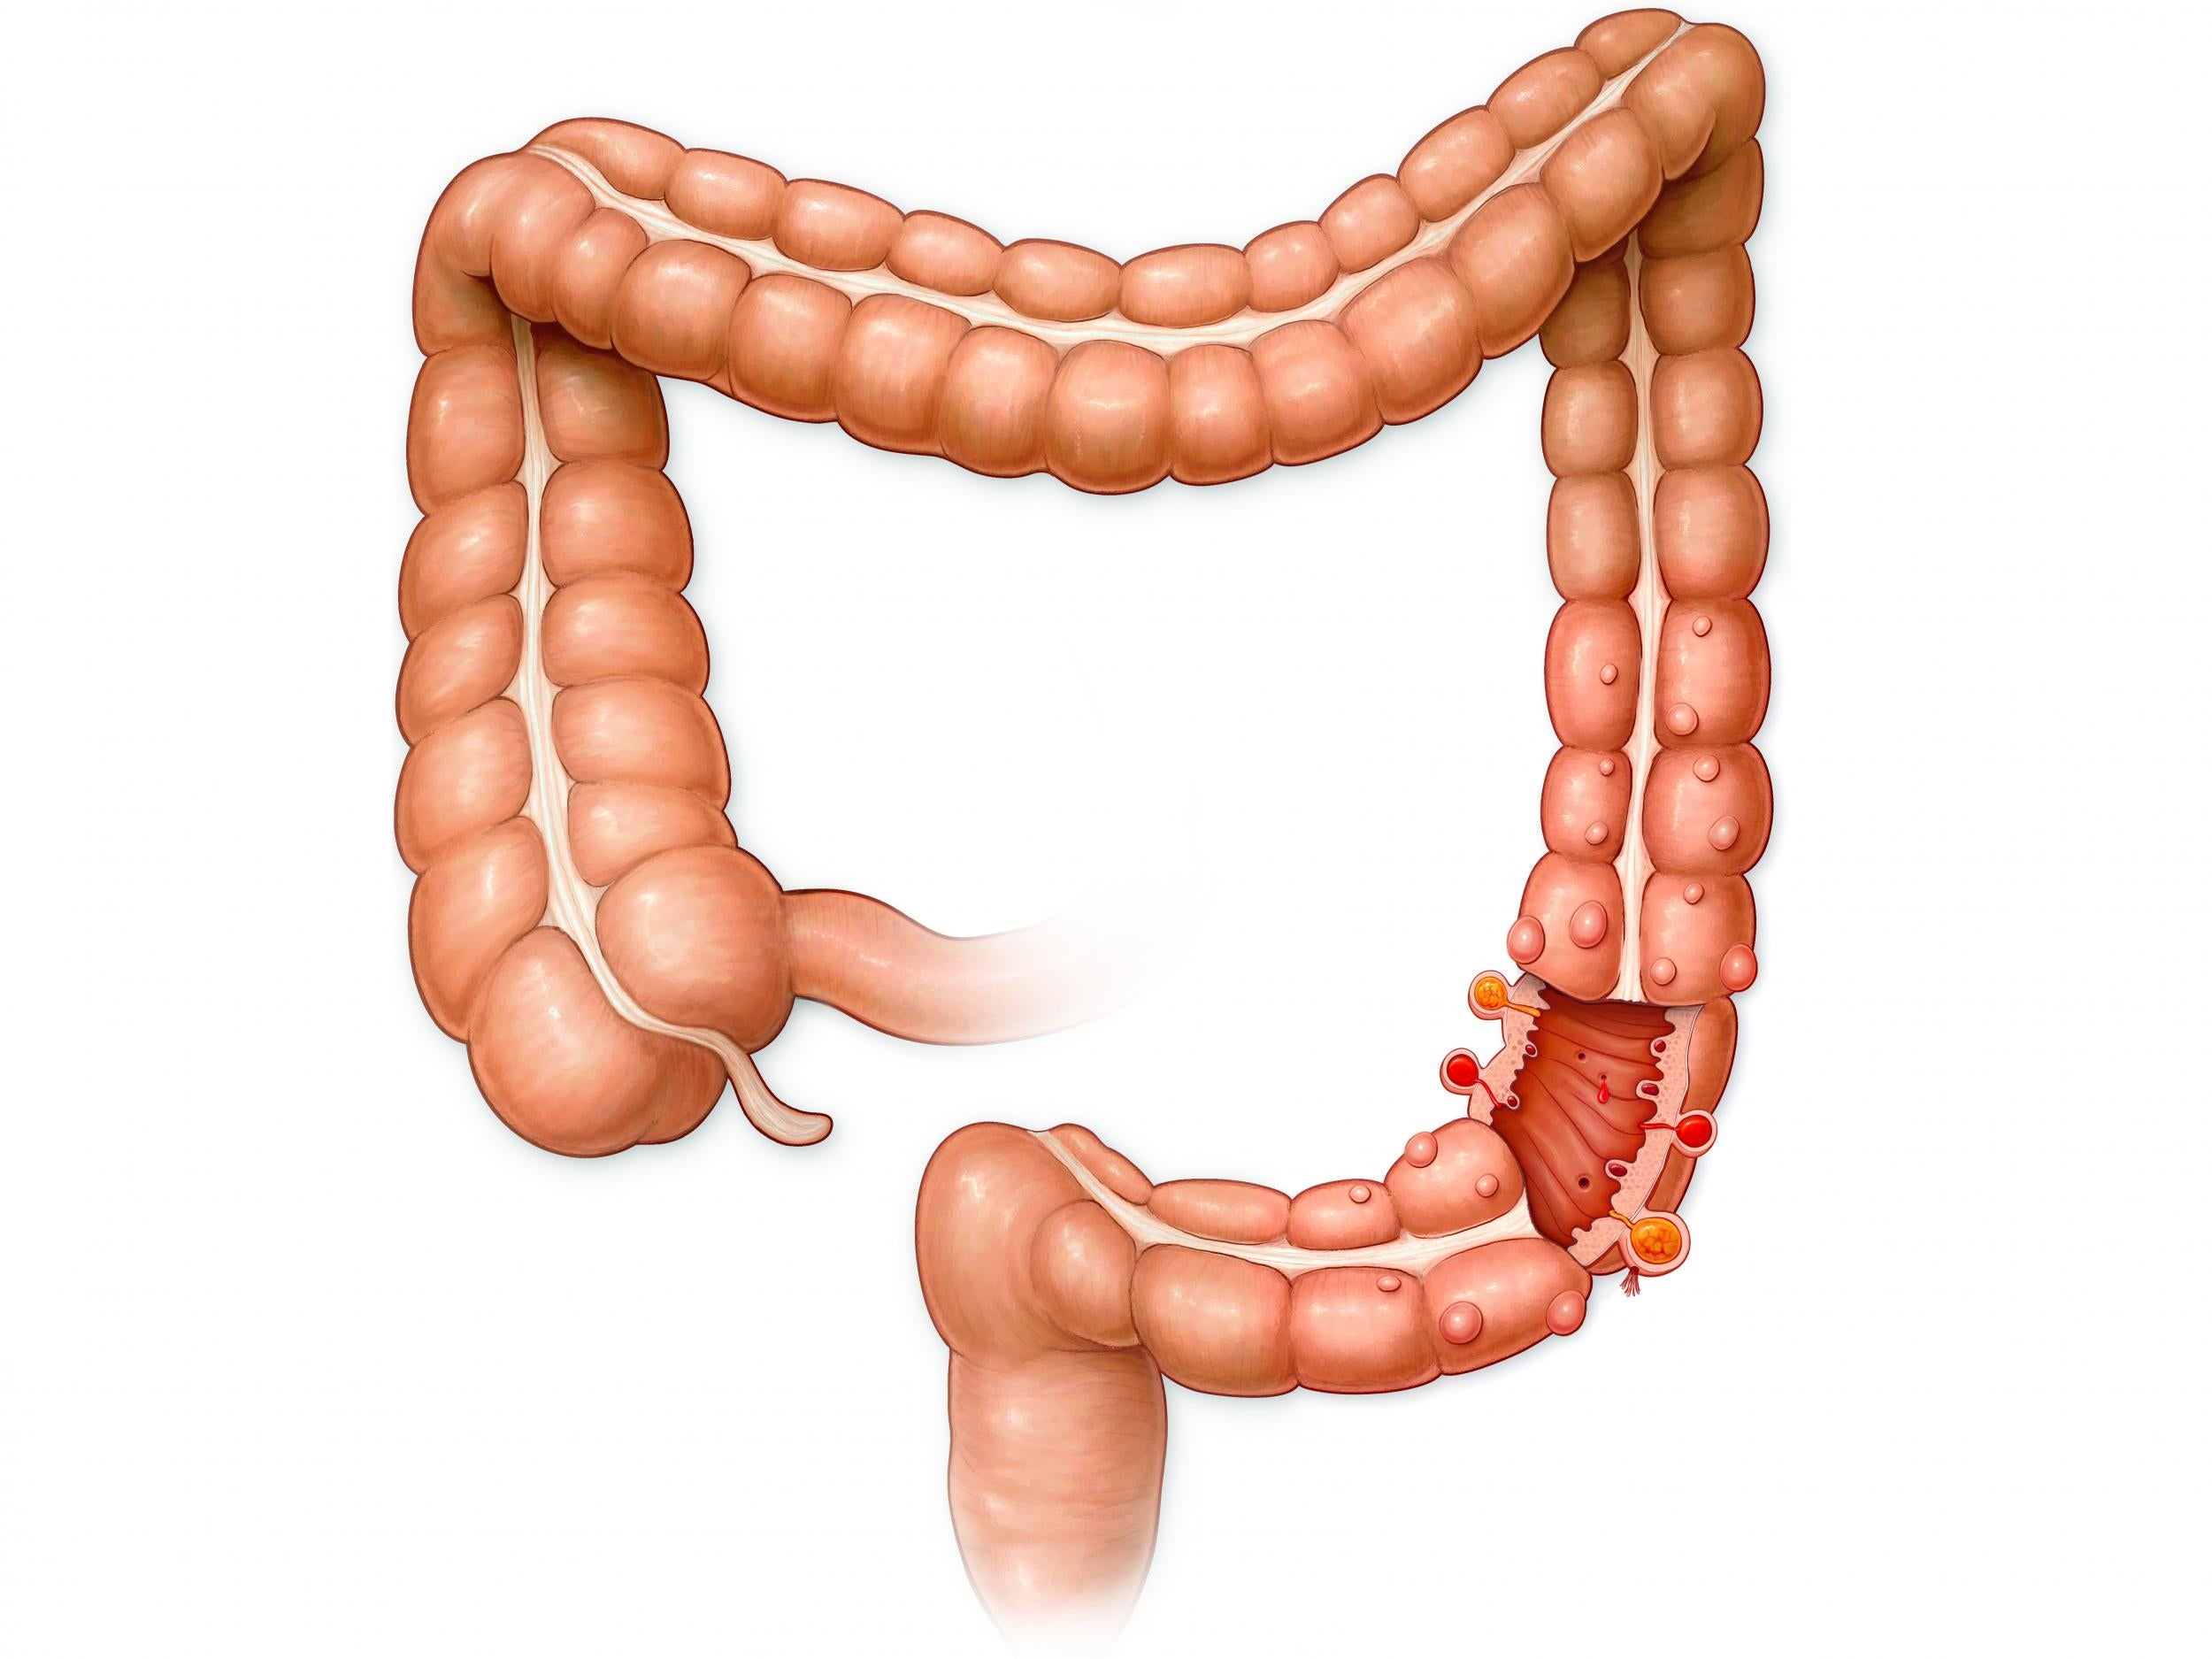 why do we have an appendix? scientists have discovered its purpose, Cephalic Vein